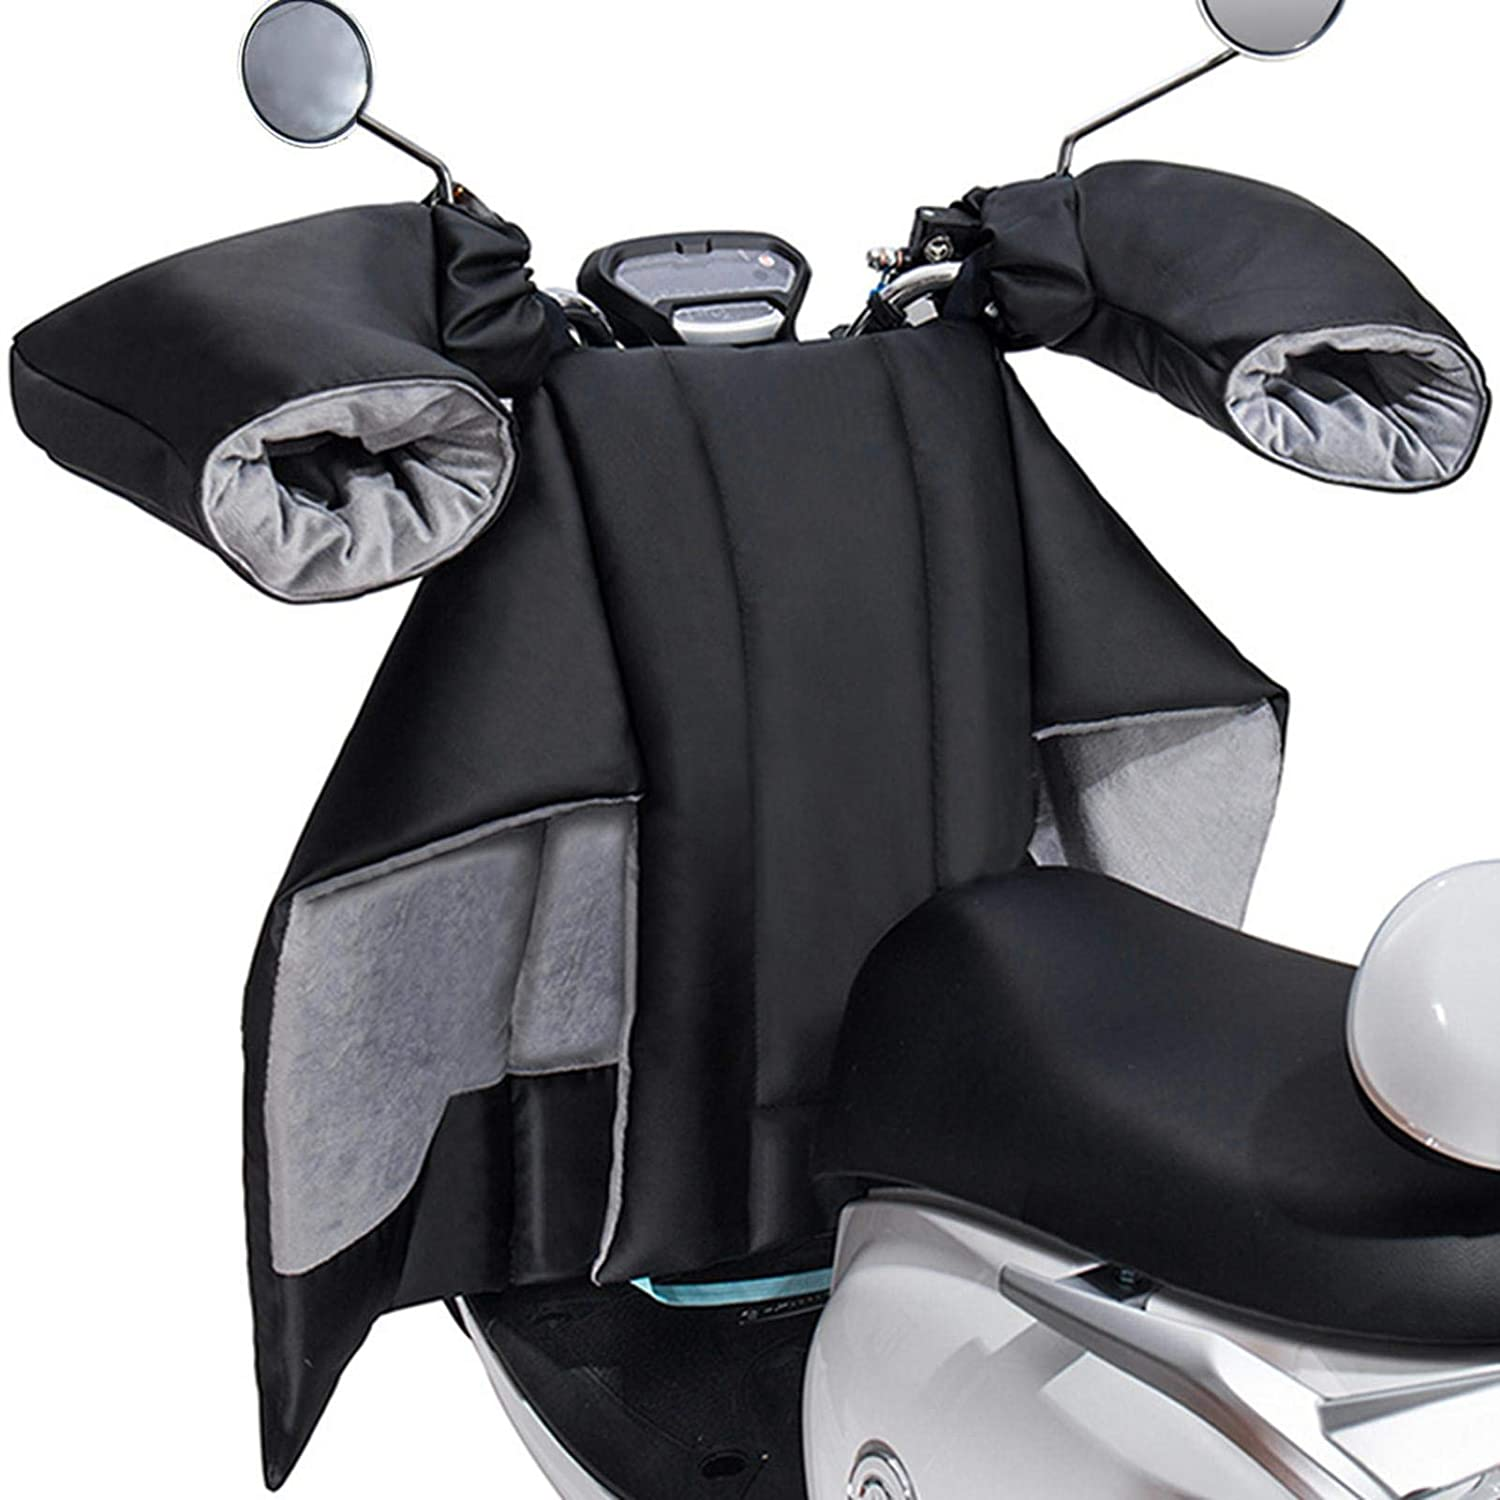 Xiaoling Motorbike Cover Scooter Leg Cover, Leg Lap Apron Cover, Thickened Windproof Warm Cover for Motorcycle,Warm Keeping Cotton Shield